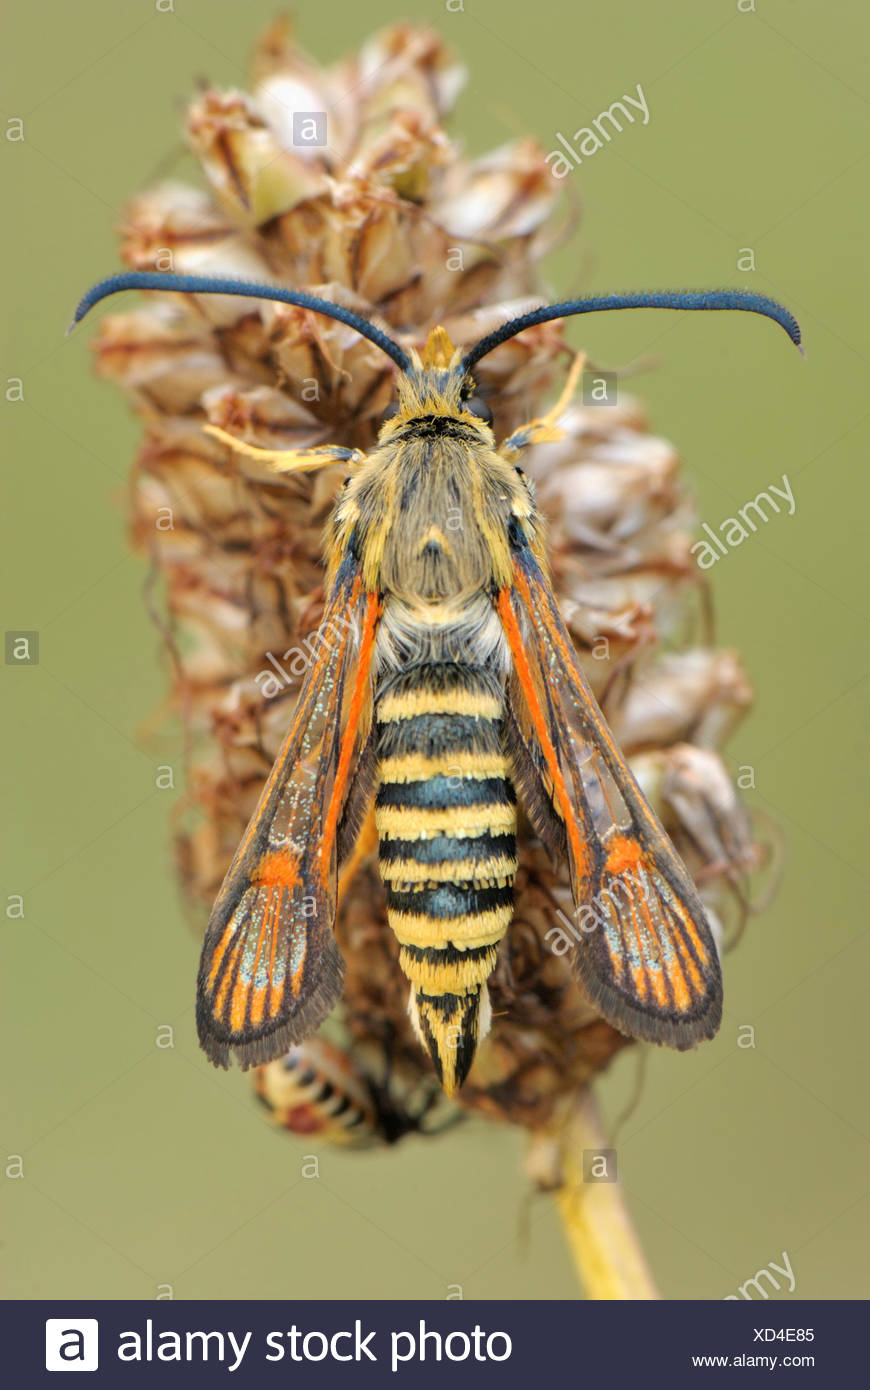 Six-belted Clearwing (Bembecia ichneumoniformis), perched on a seed head, Valle Verzasca, Kanton Tessin, Switzerland - Stock Image